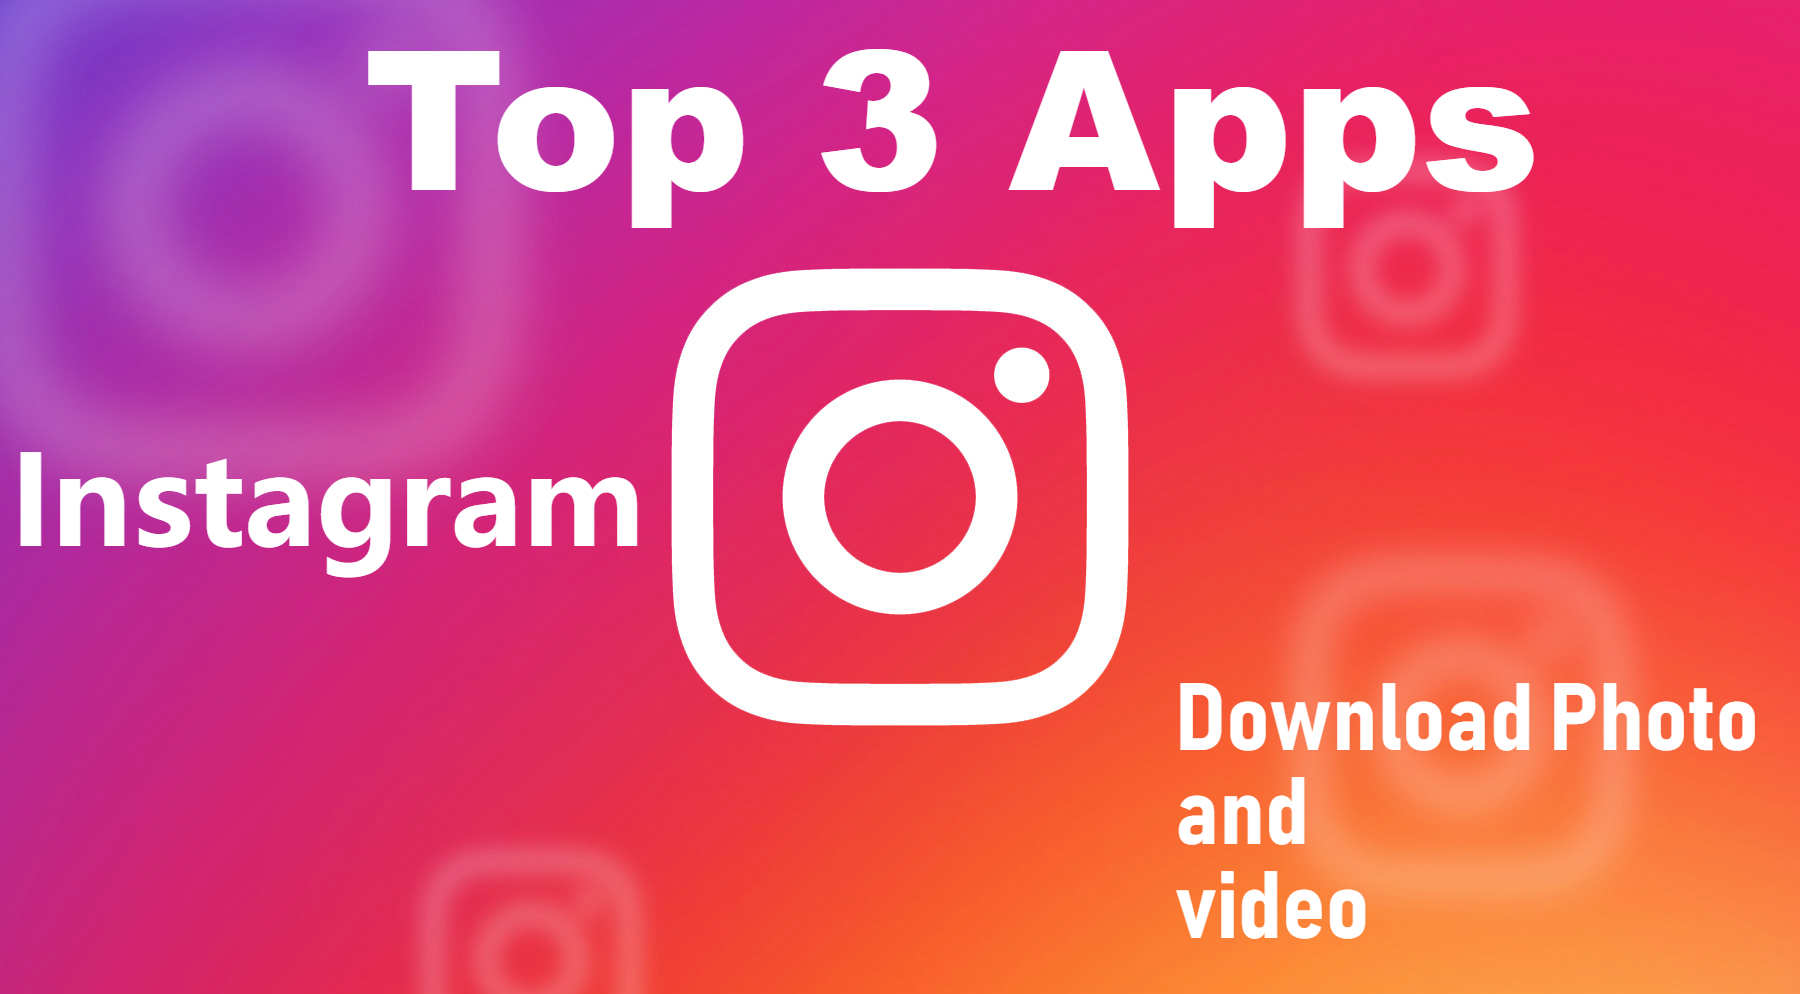 Best Android Apps to Download Instagram Photos and Videos